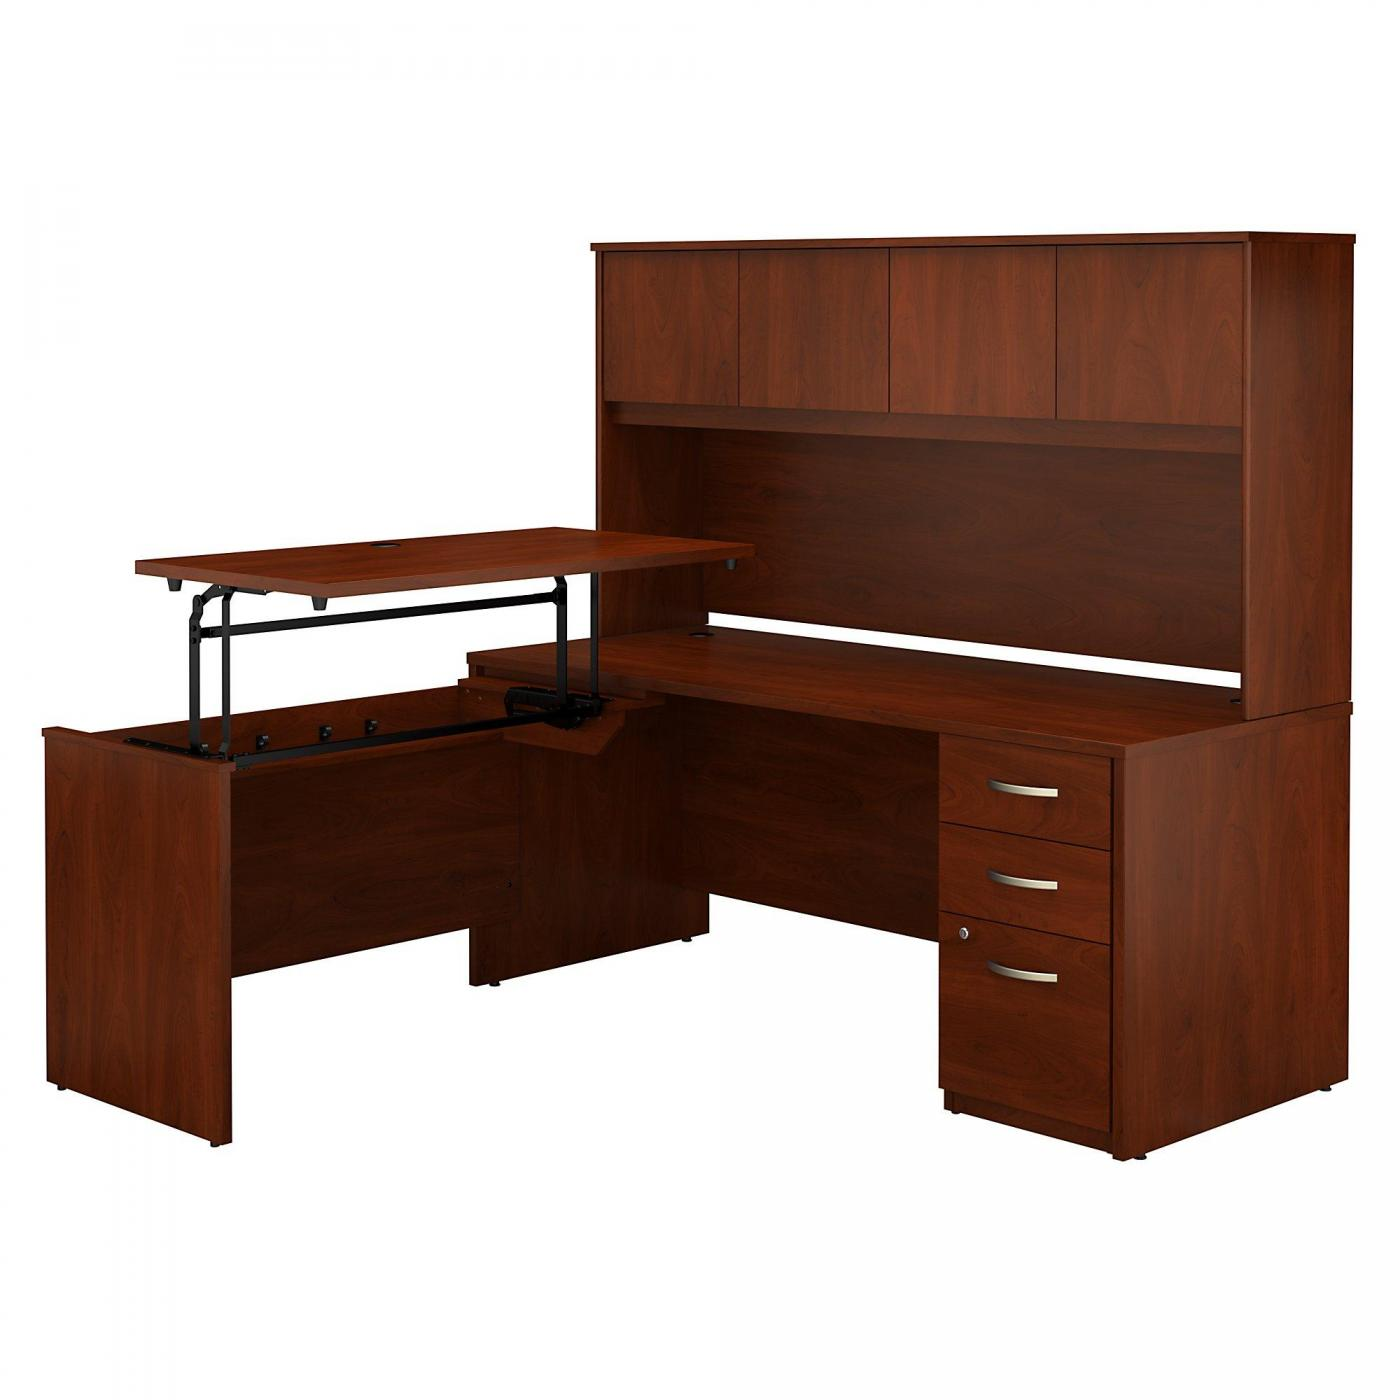 <font color=#c60><b>BUSH BUSINESS FURNITURE SERIES C ELITE 72W X 30D 3 POSITION SIT TO STAND L SHAPED DESK WITH HUTCH AND 3 DRAWER FILE CABINET. FREE SHIPPING</font></b>